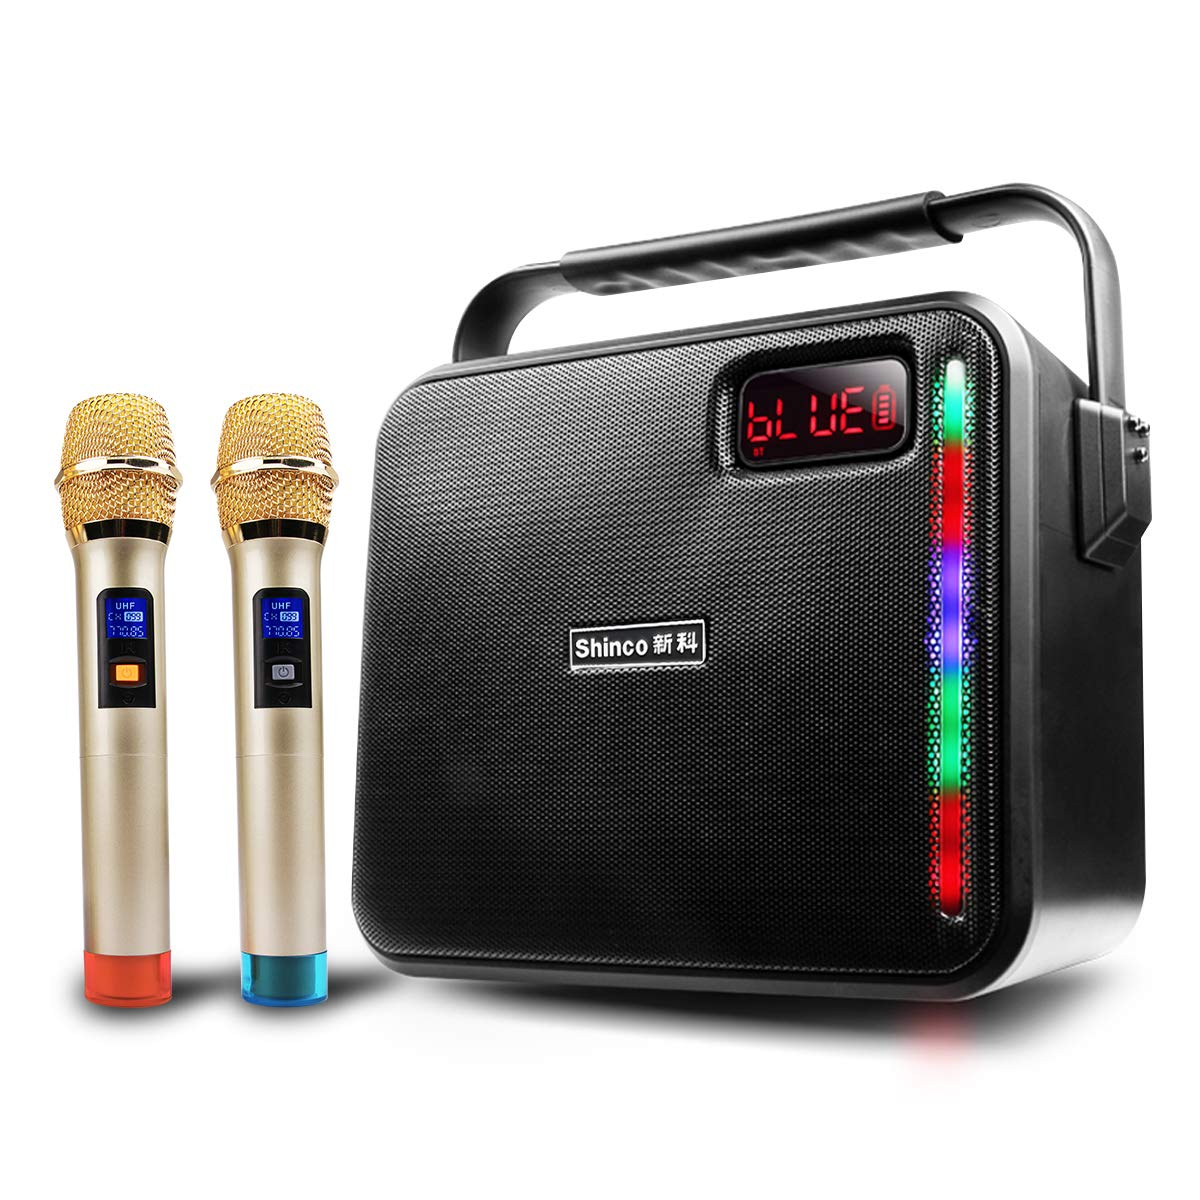 Shinco Portable PA System Bluetooth Karaoke Machine Battery Powered PA Speaker with 2 UHF Wireless Microphone, AUX Cable USB Charging for Smartphone and Tablet